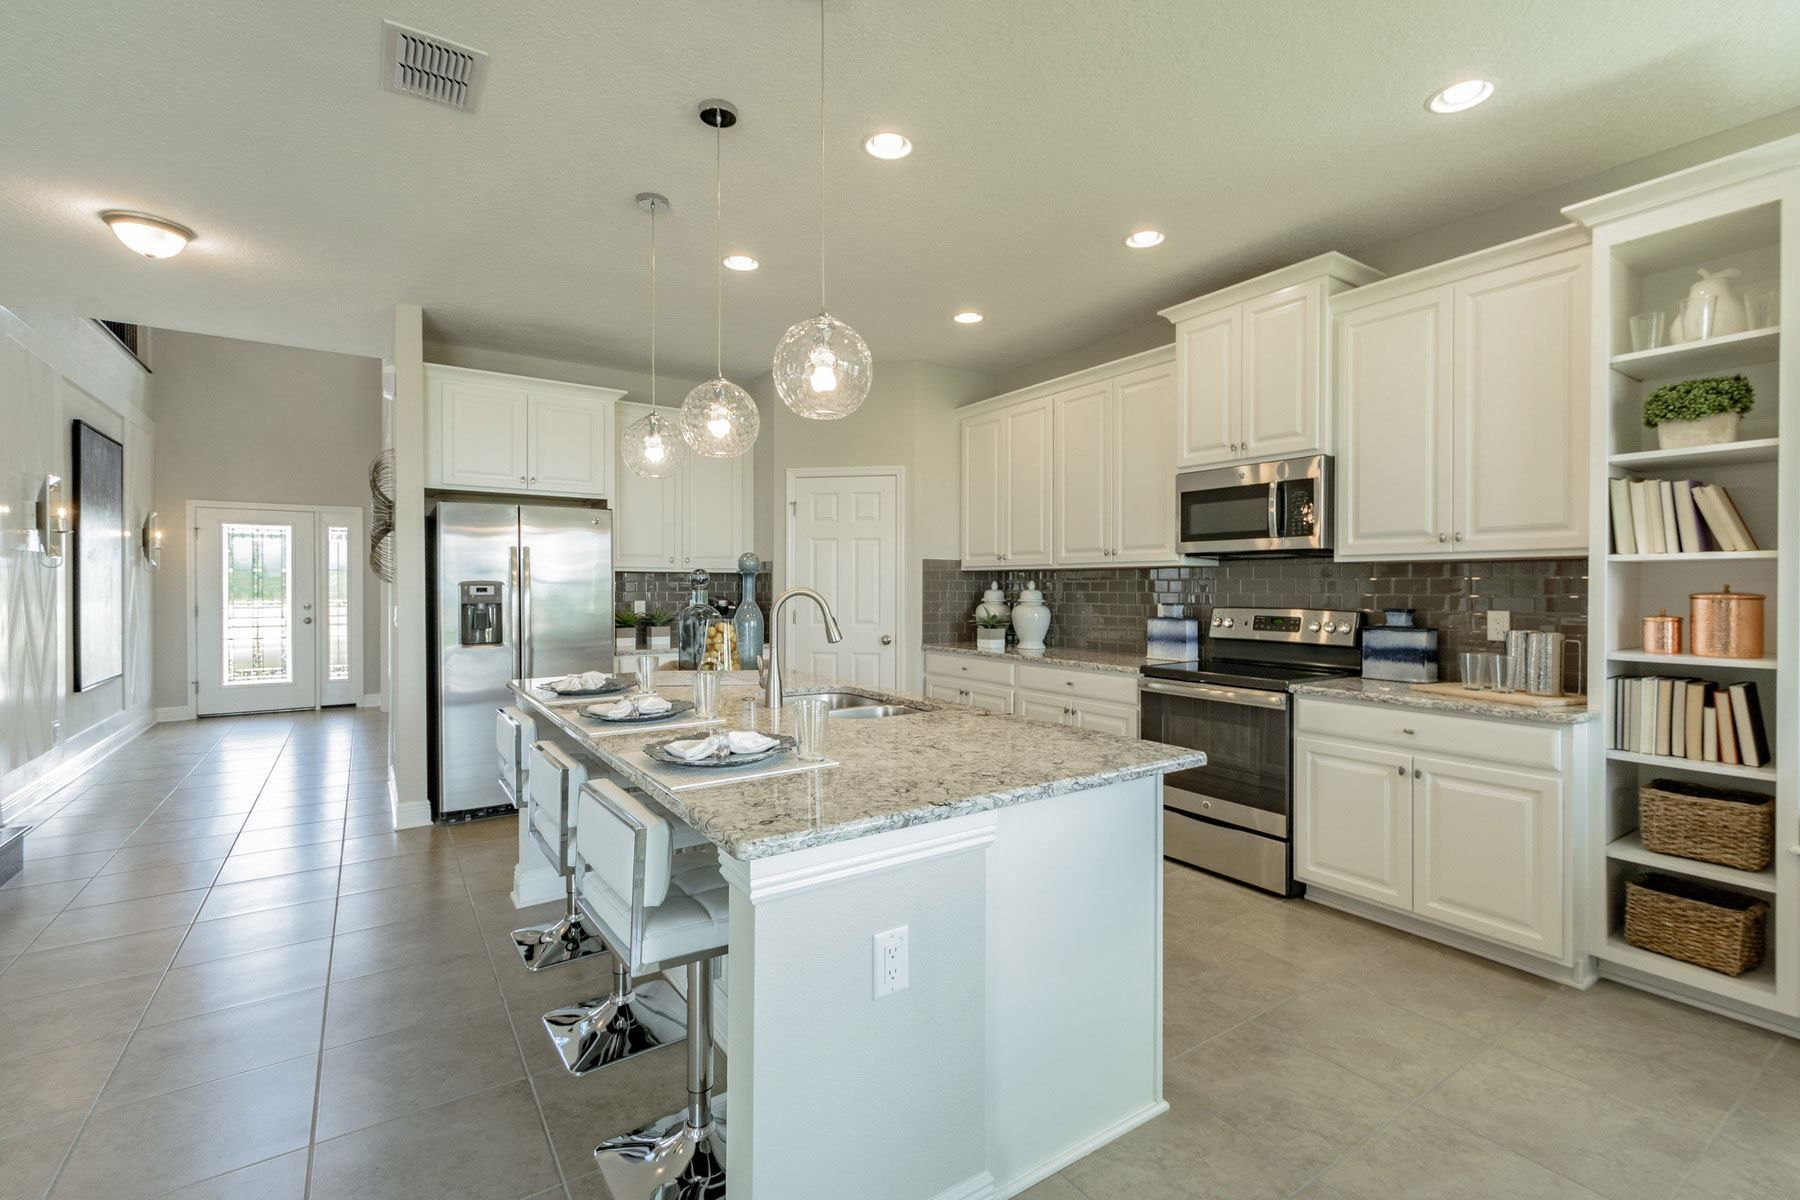 Mi Homes Model Home At Epperson Ranch Wesley Chapel Tampa Fl Dali Smartstyle Plan Home Kitchens Kitchen Design Home